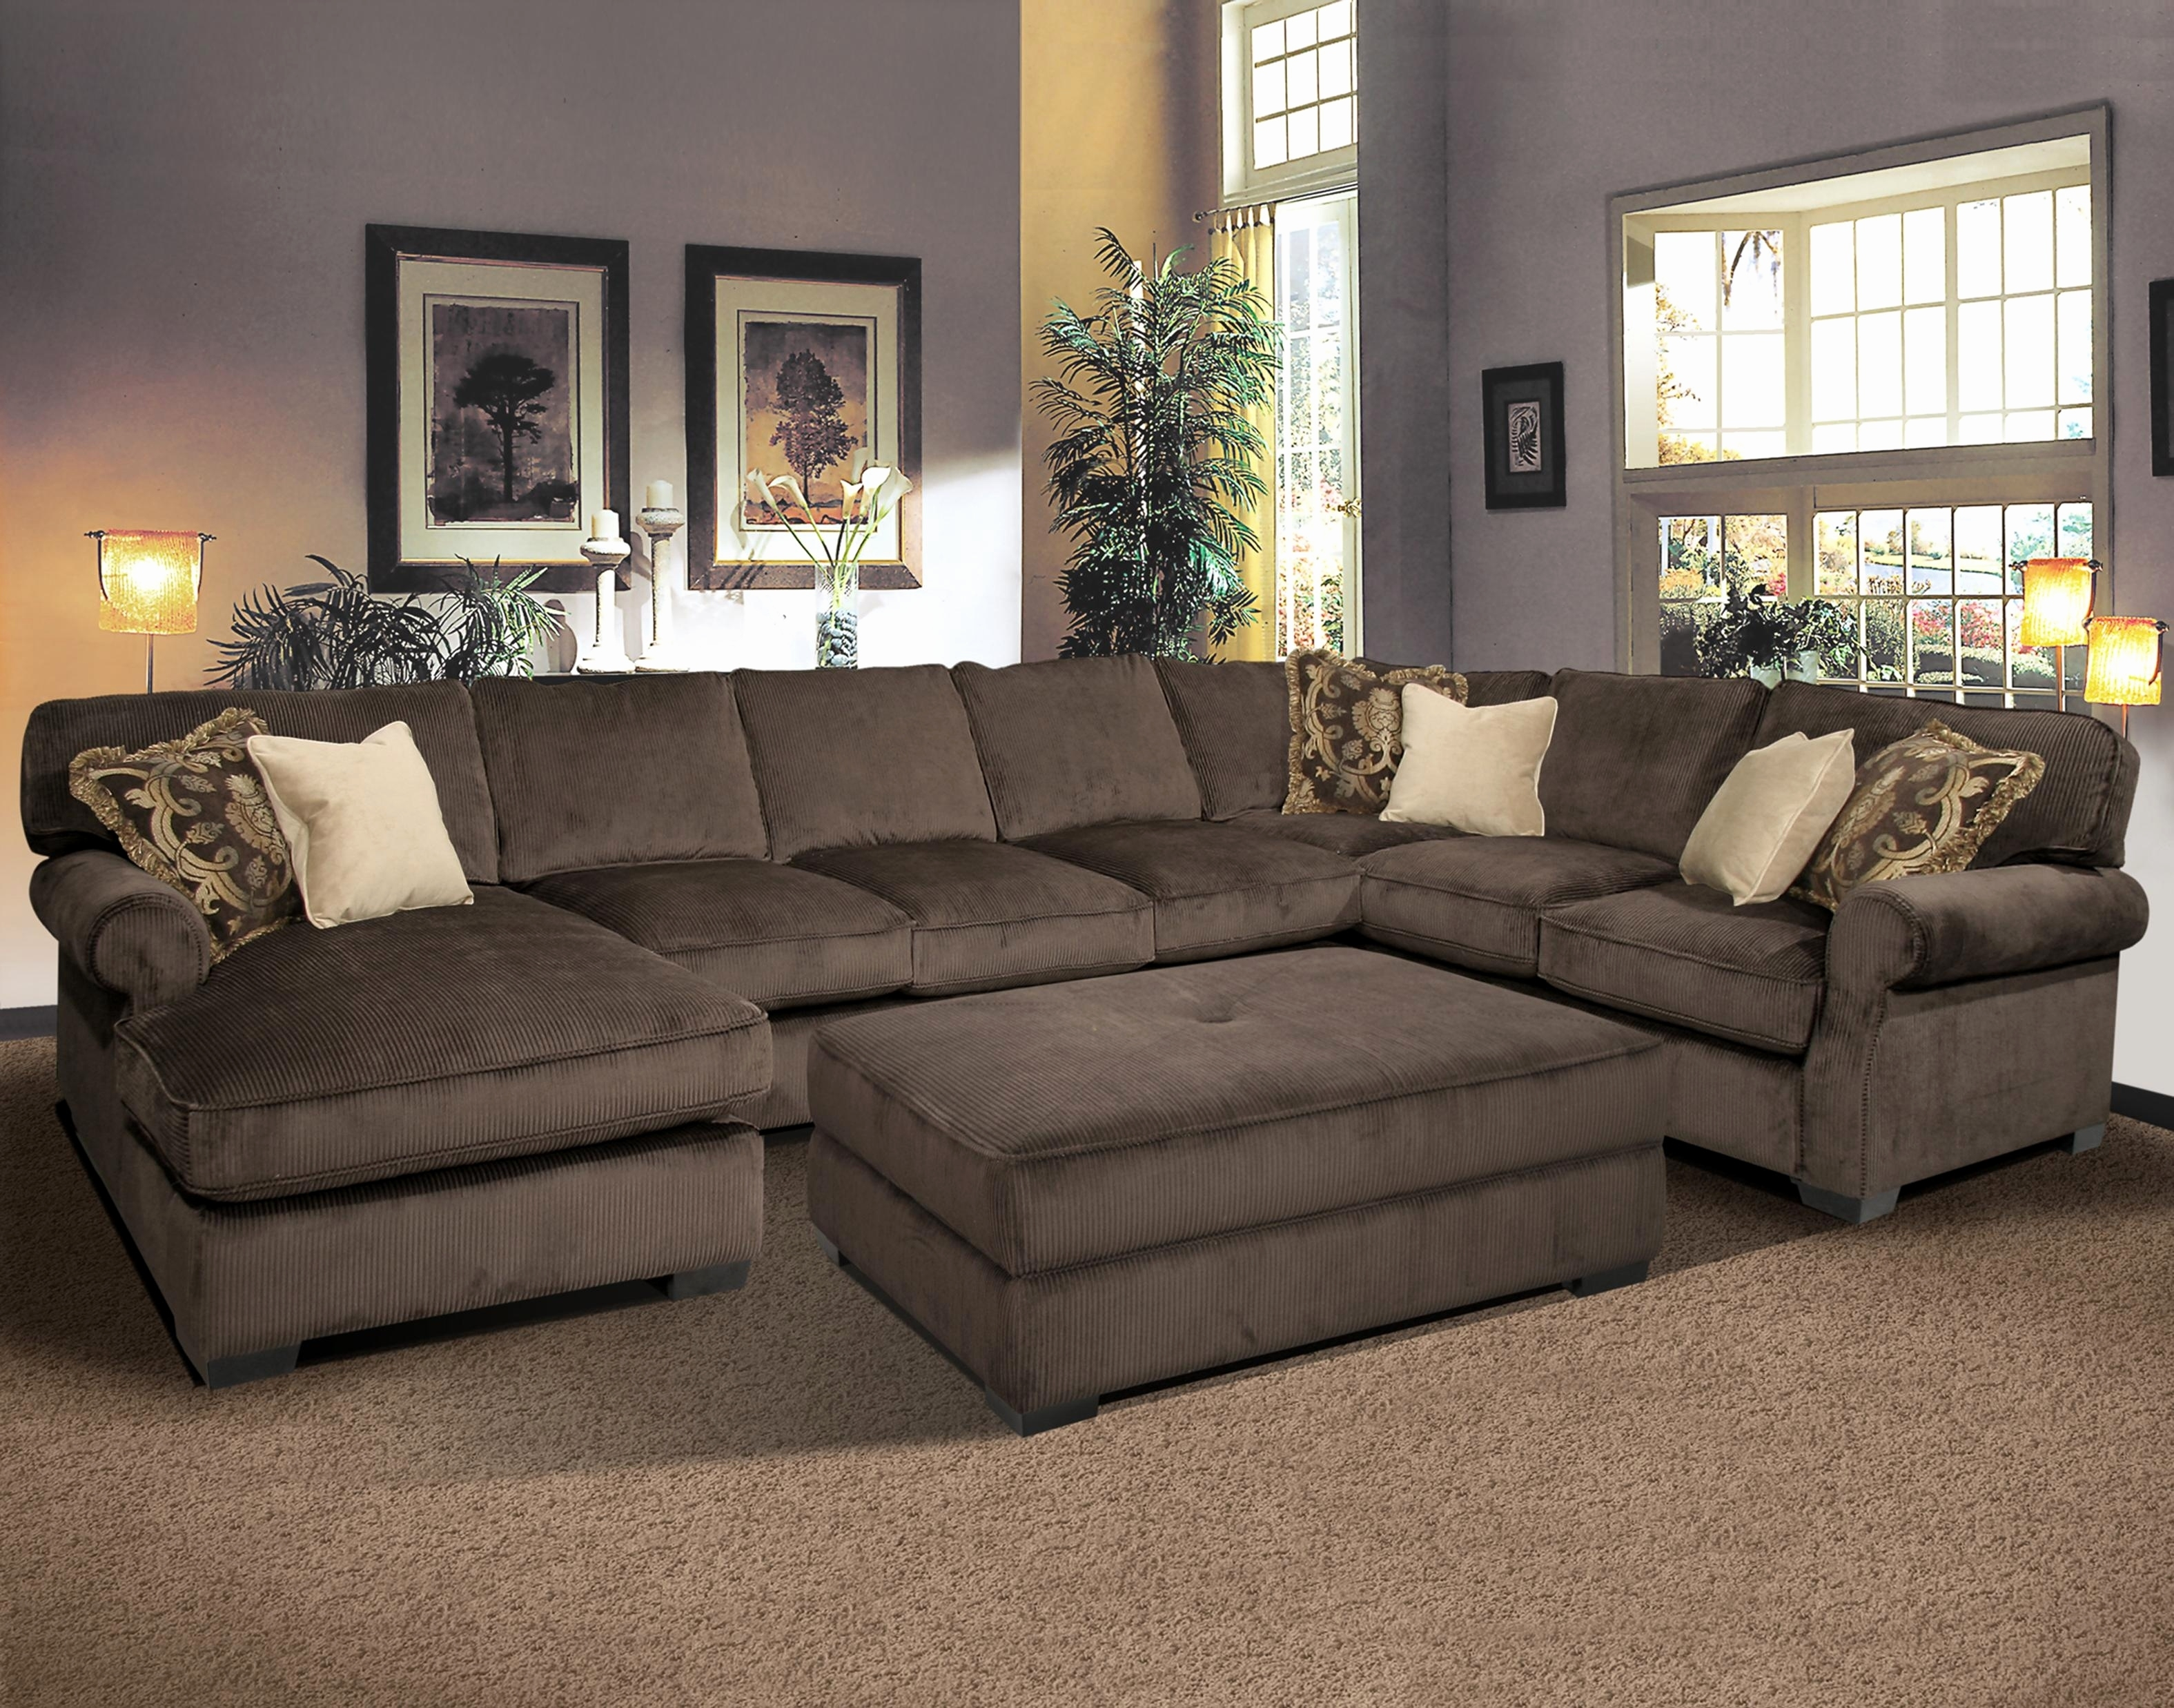 Sectional Sofas With Chaise Lounge And Ottoman | Www With Regard To Sectional Sofas With Chaise Lounge And Ottoman (Image 10 of 10)